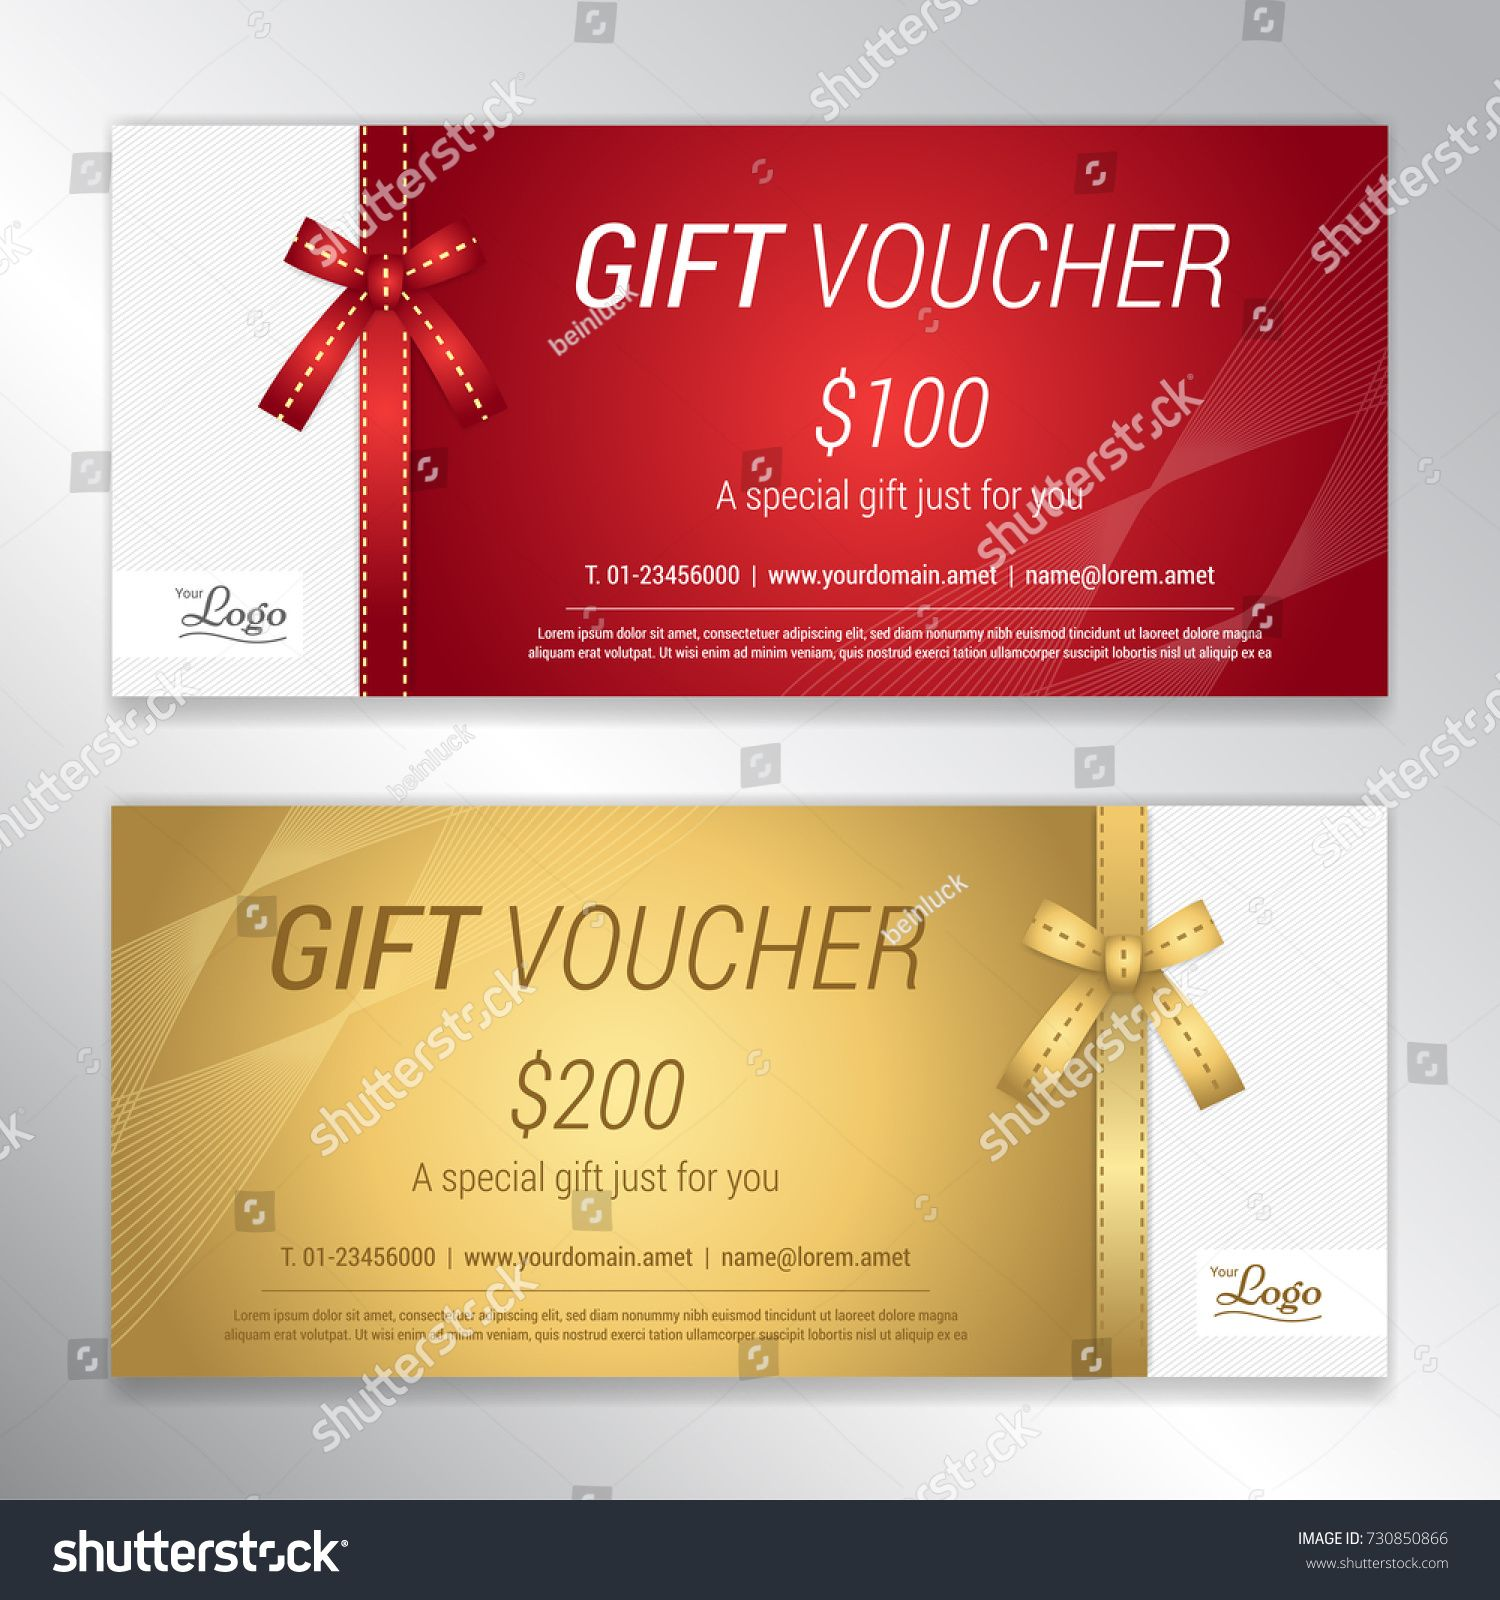 Gift Voucher Certificate Or Discount Card Template For Promo Complimentcertificate Discount Gift Voucher Gift Vouchers Discount Card Card Template